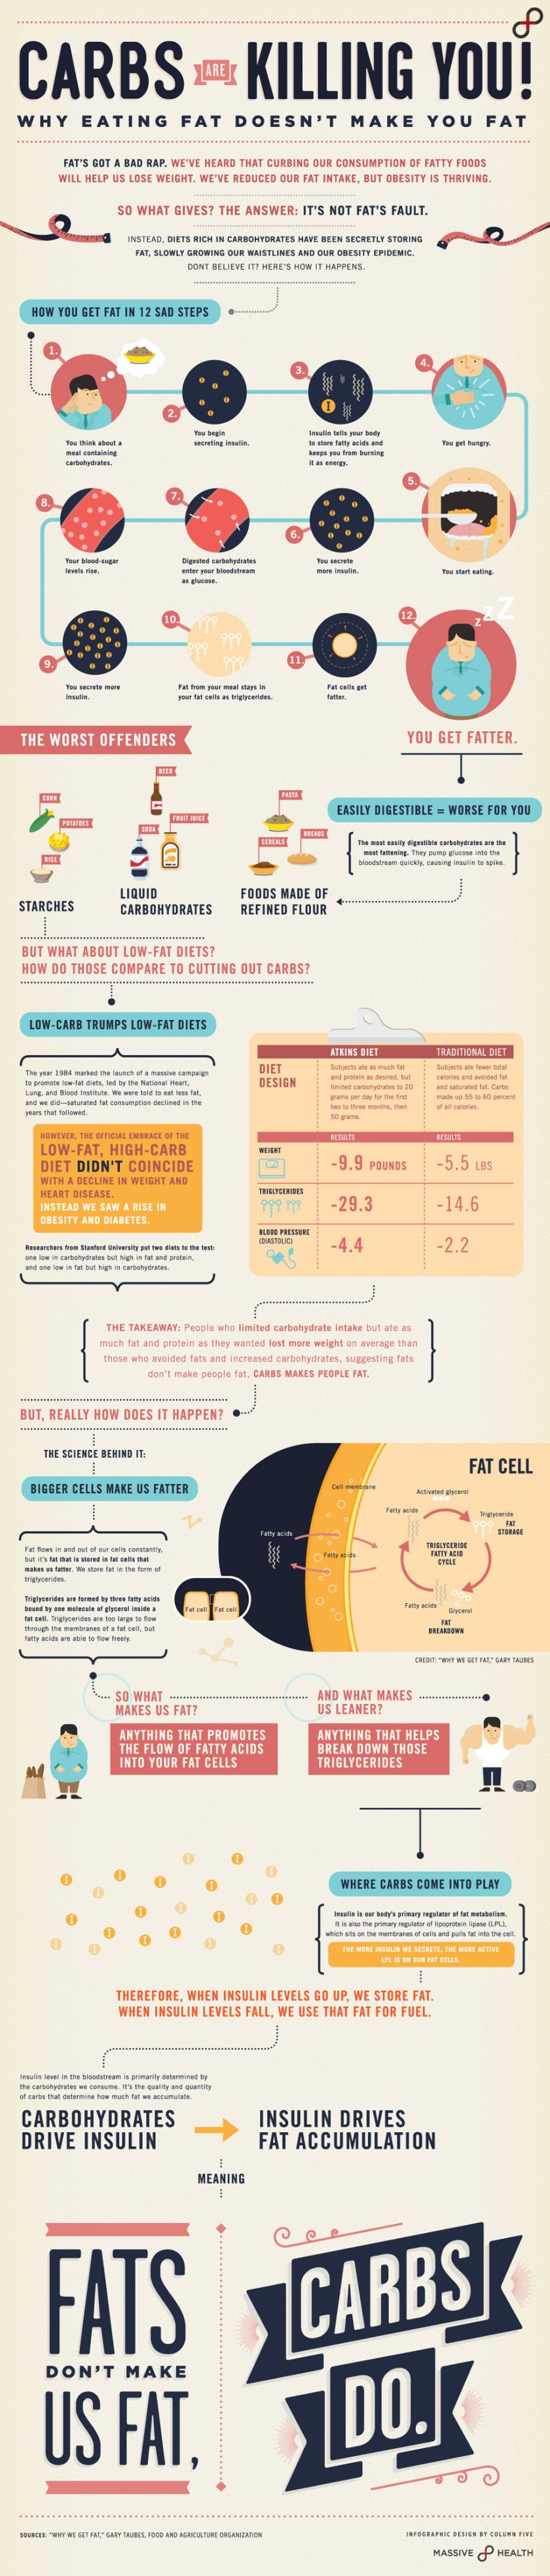 massive-health-infographic-carbs-are-killing-you-eating-fat-doesnt-make-you-fat